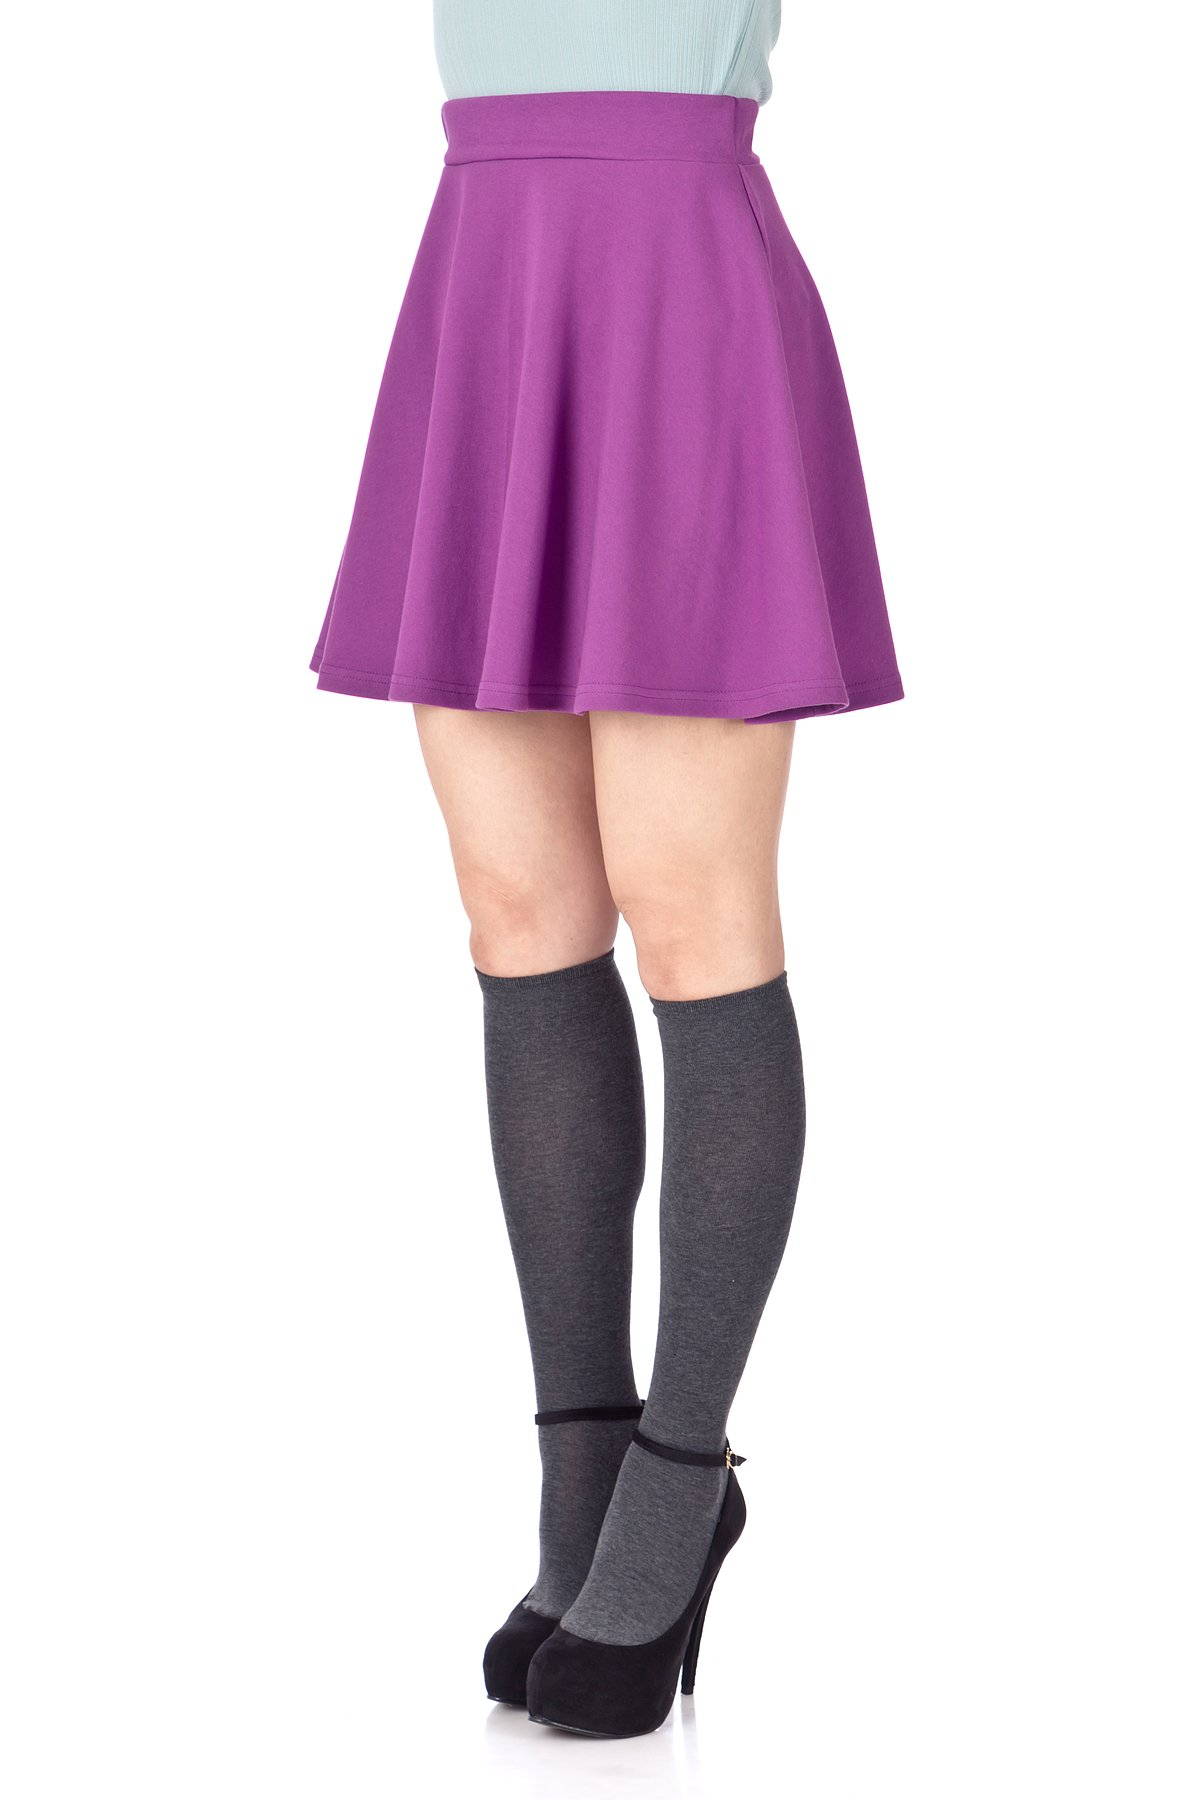 Basic Solid Stretchy Cotton High Waist A line Flared Skater Mini Skirt Violet 06